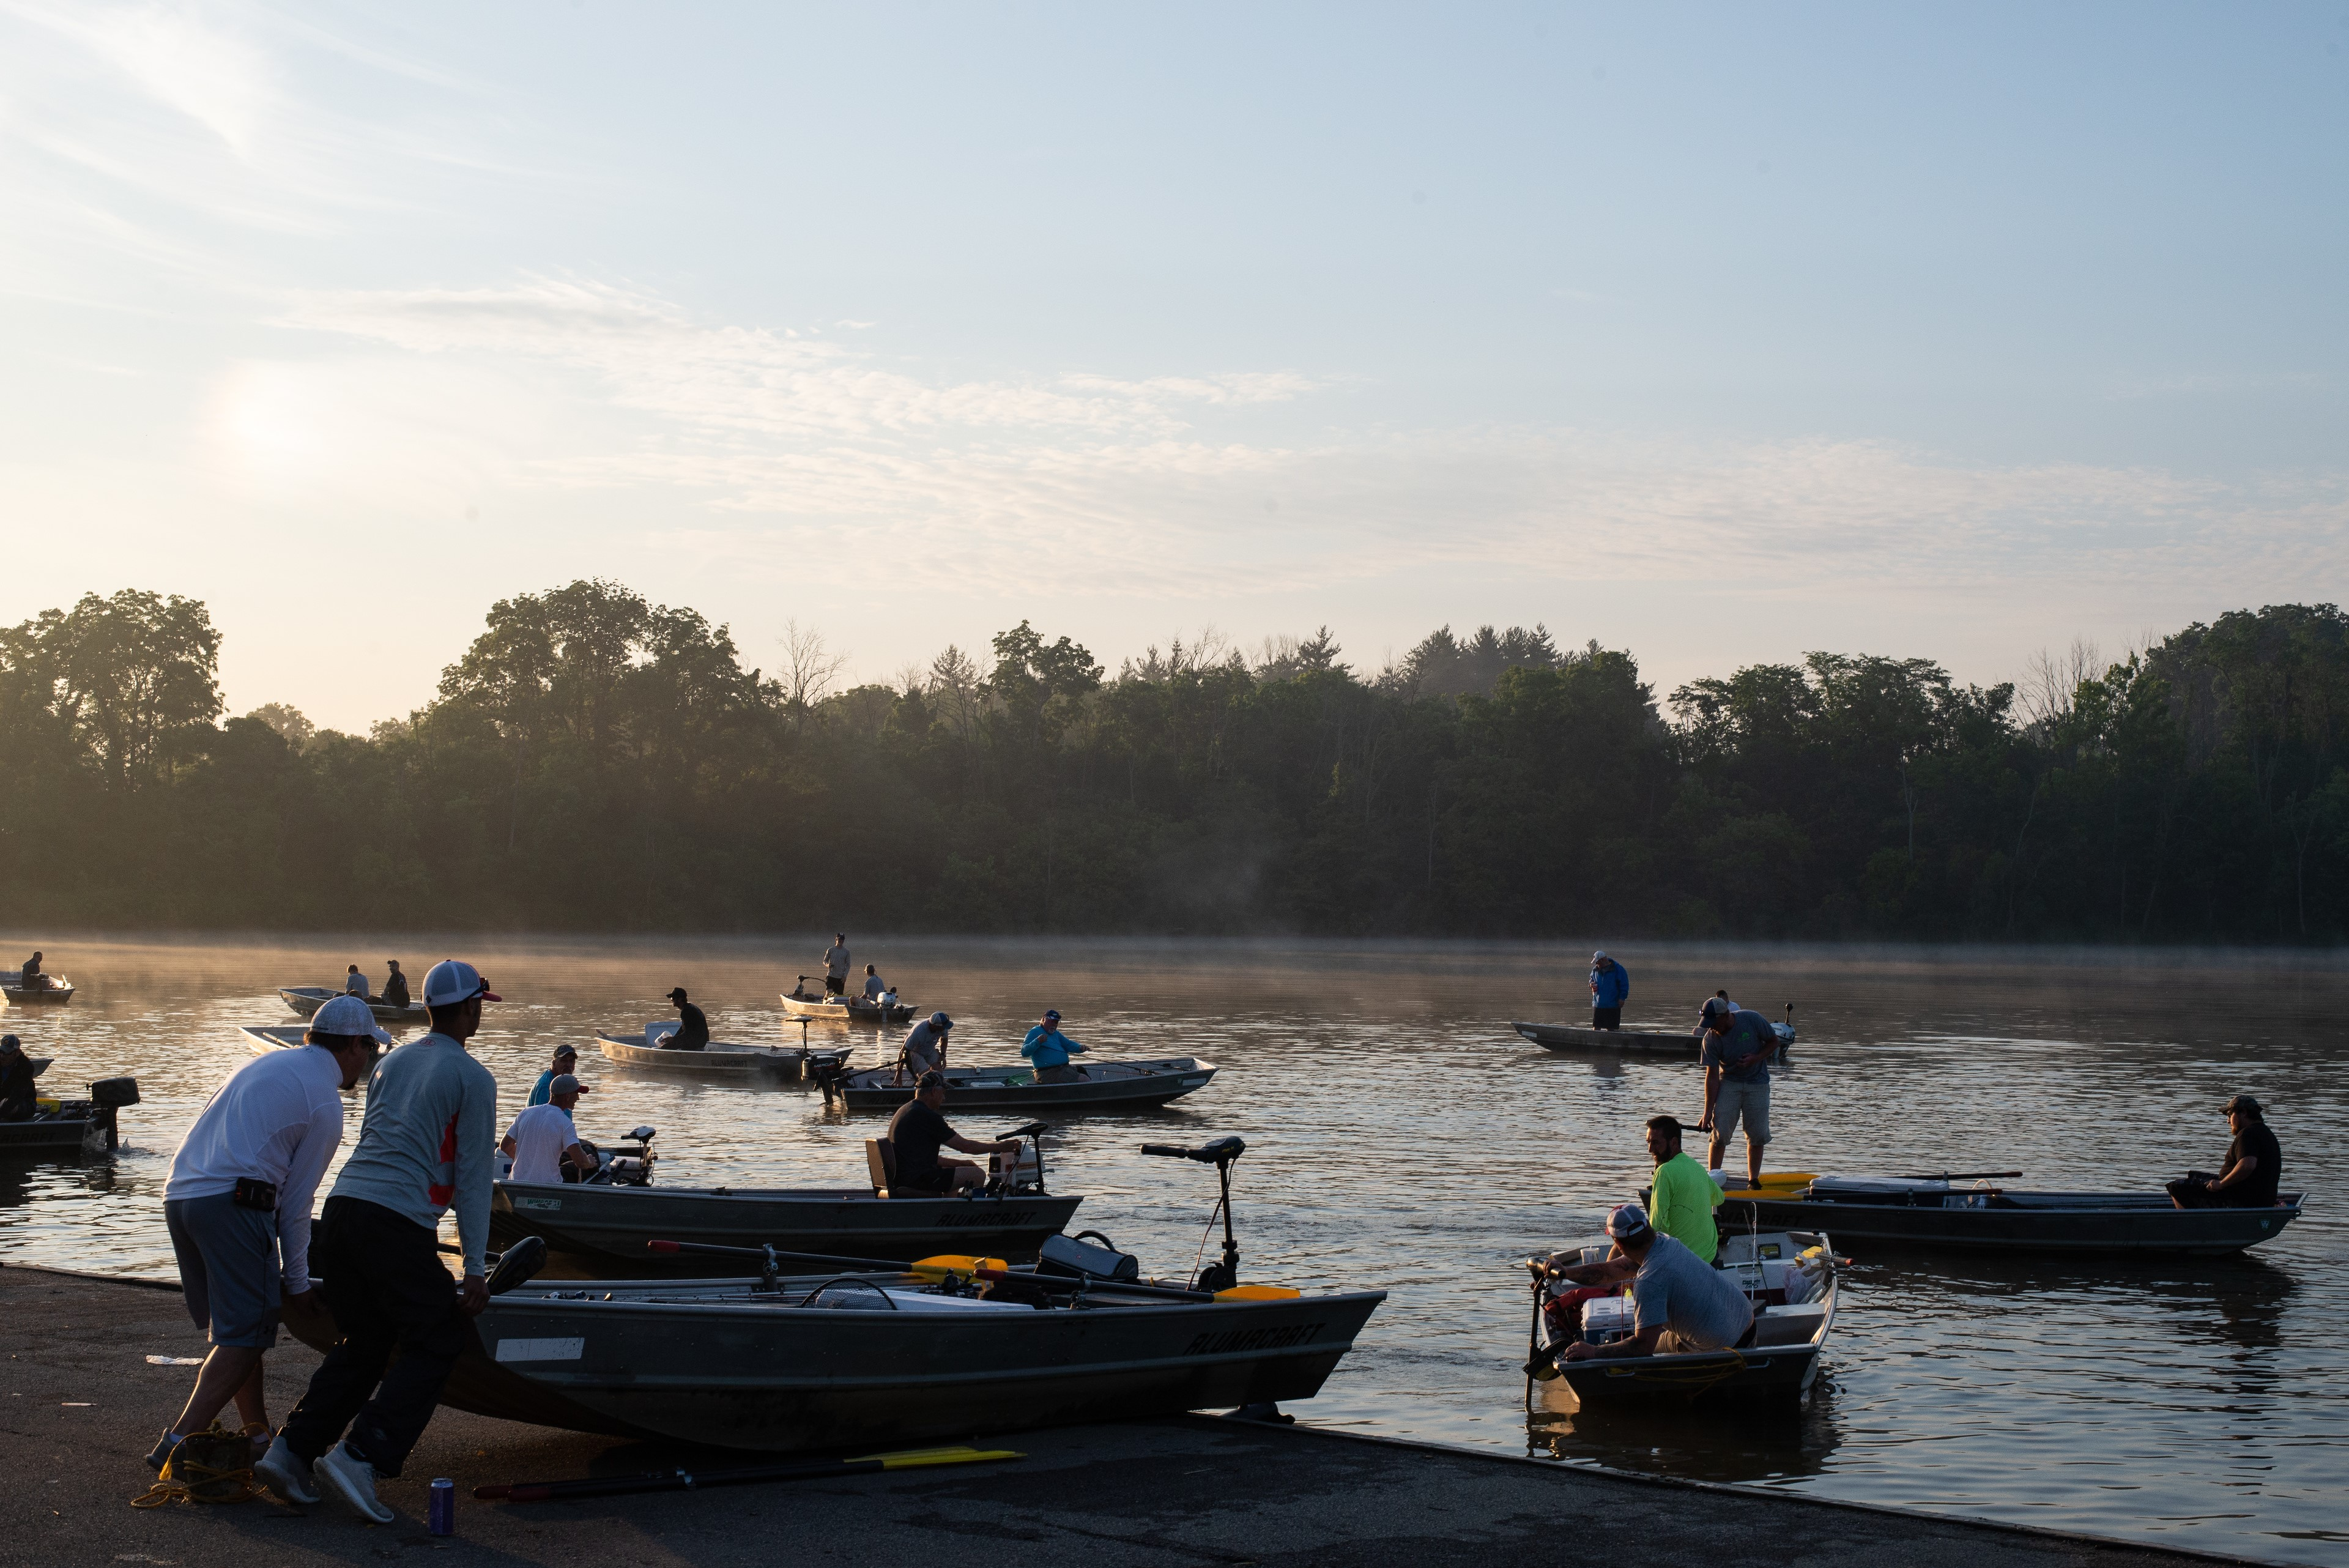 July 14 Bass Series Anglers Head Out on the Water